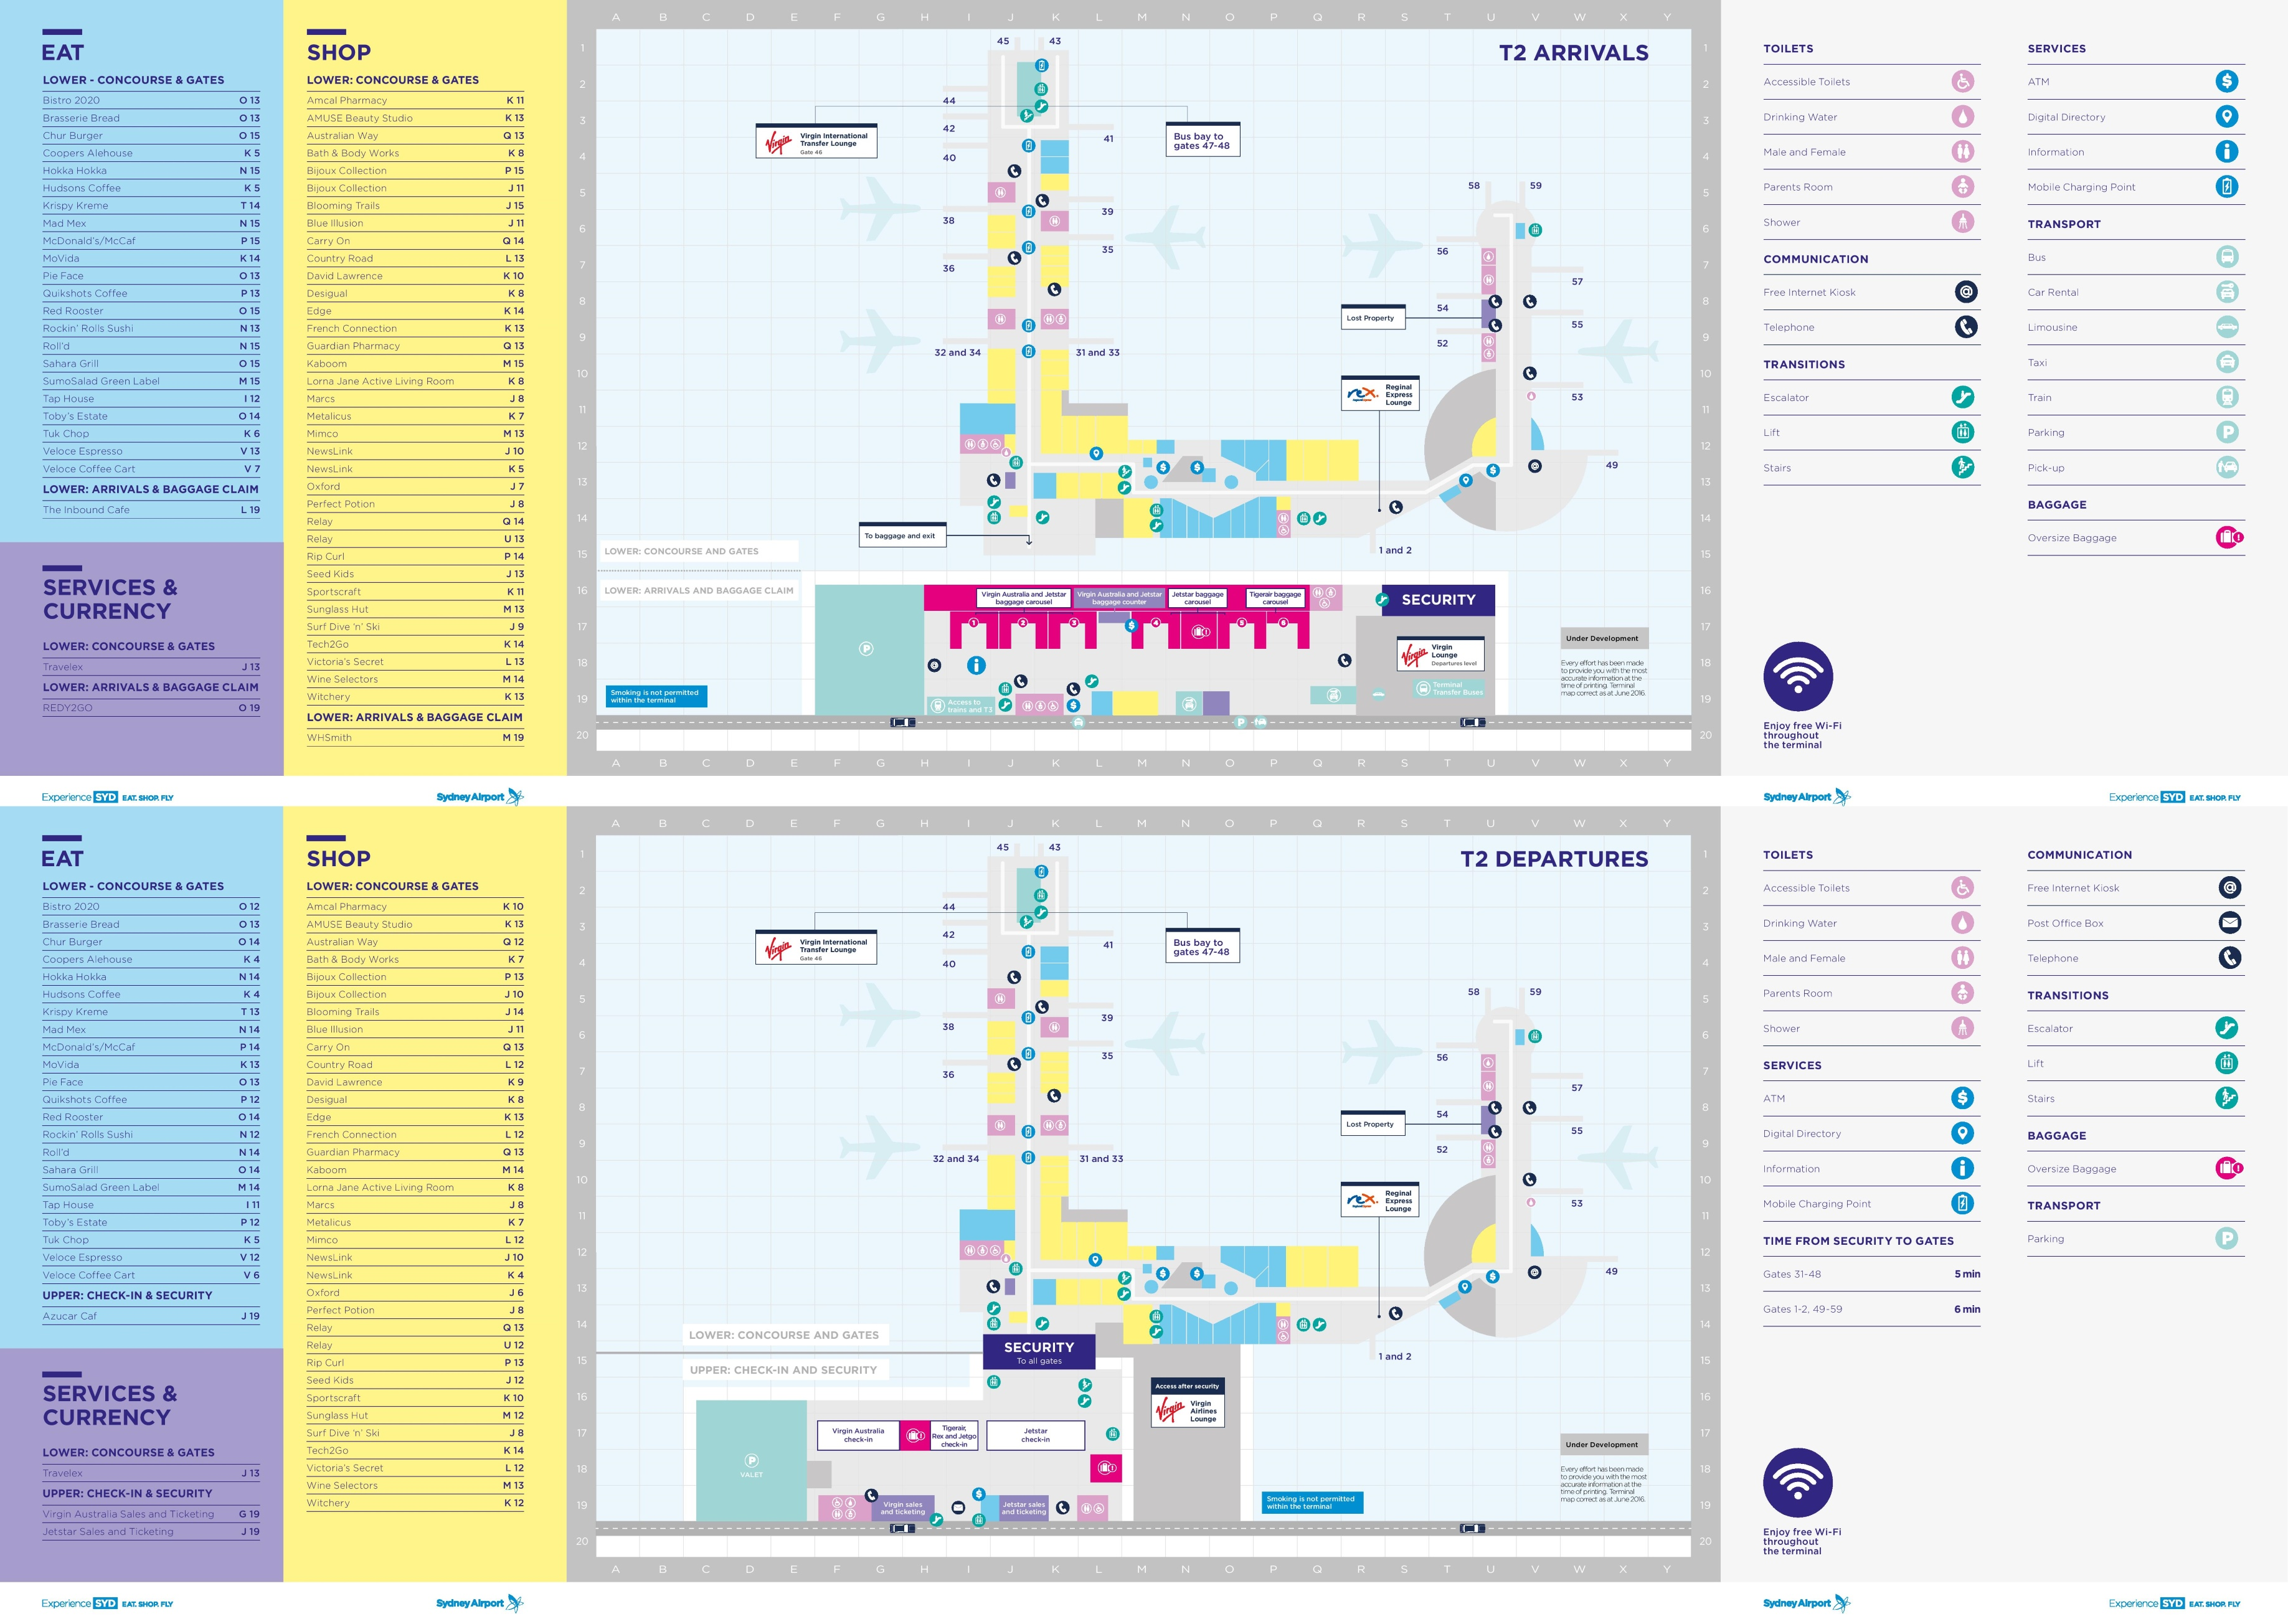 Sydney Airport Terminal Map Sydney airport terminal 2 map